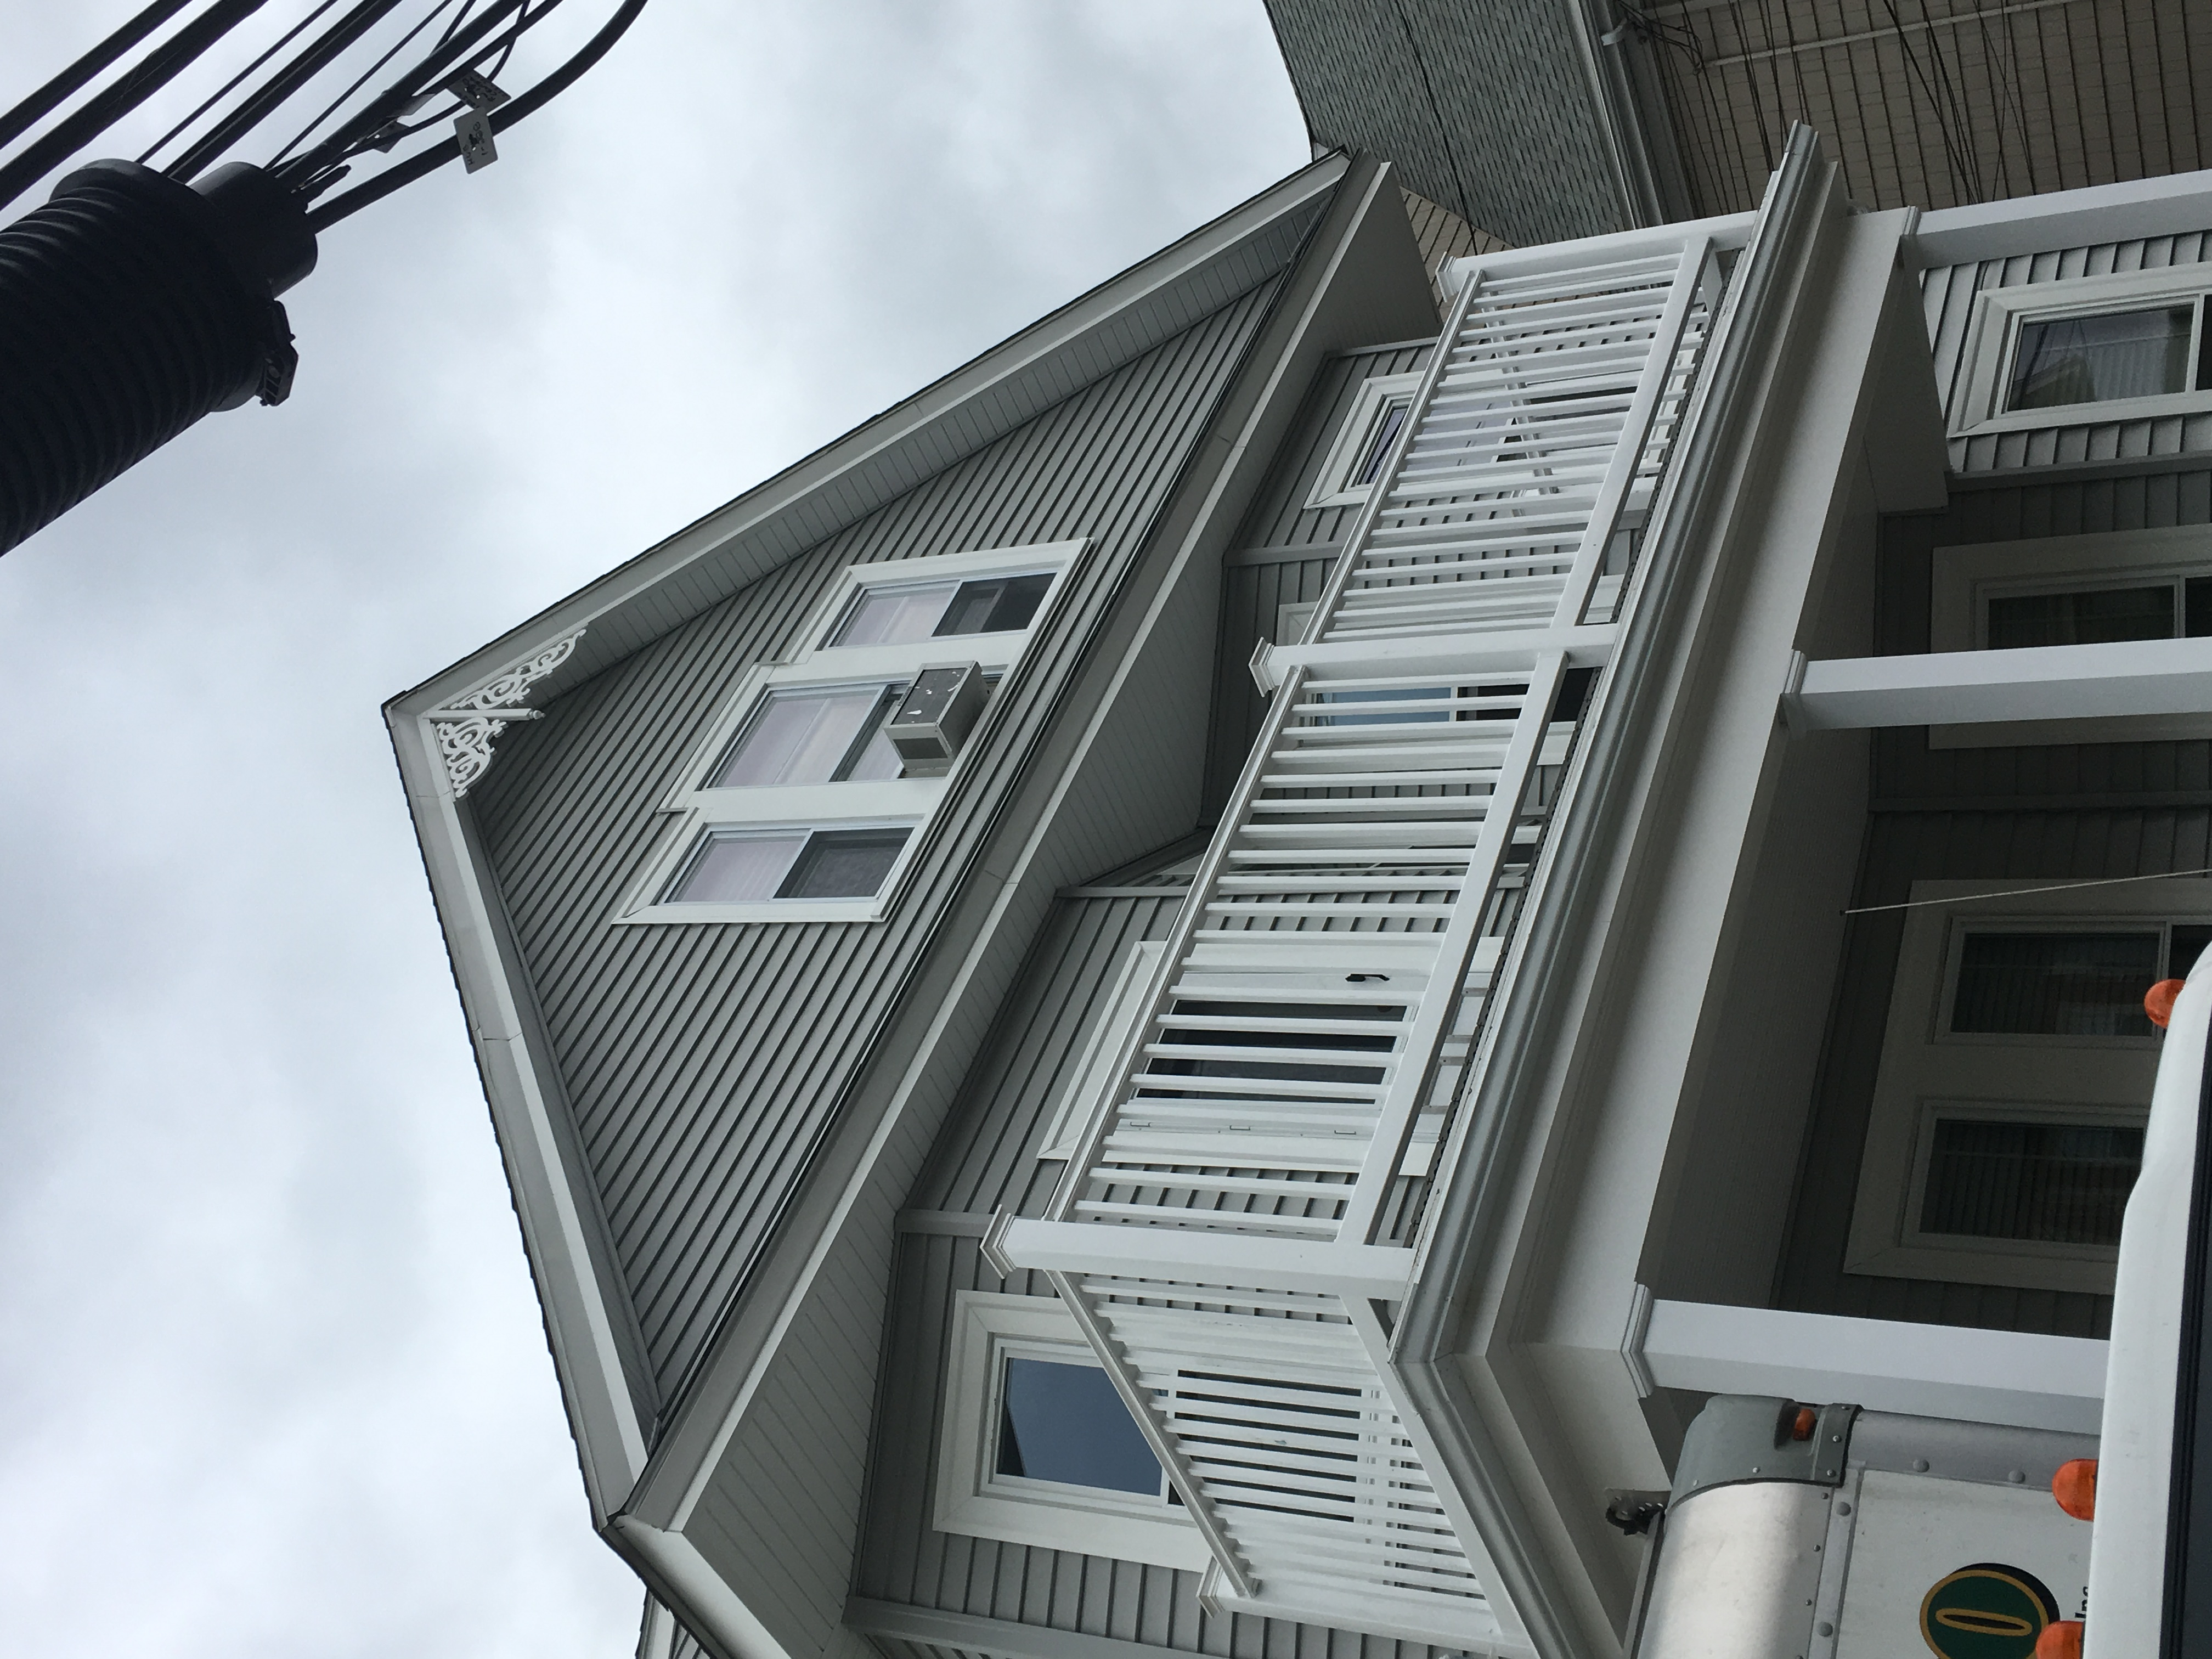 Beantown Home Improvements Inc Halifax MA Roofing Siding Windows